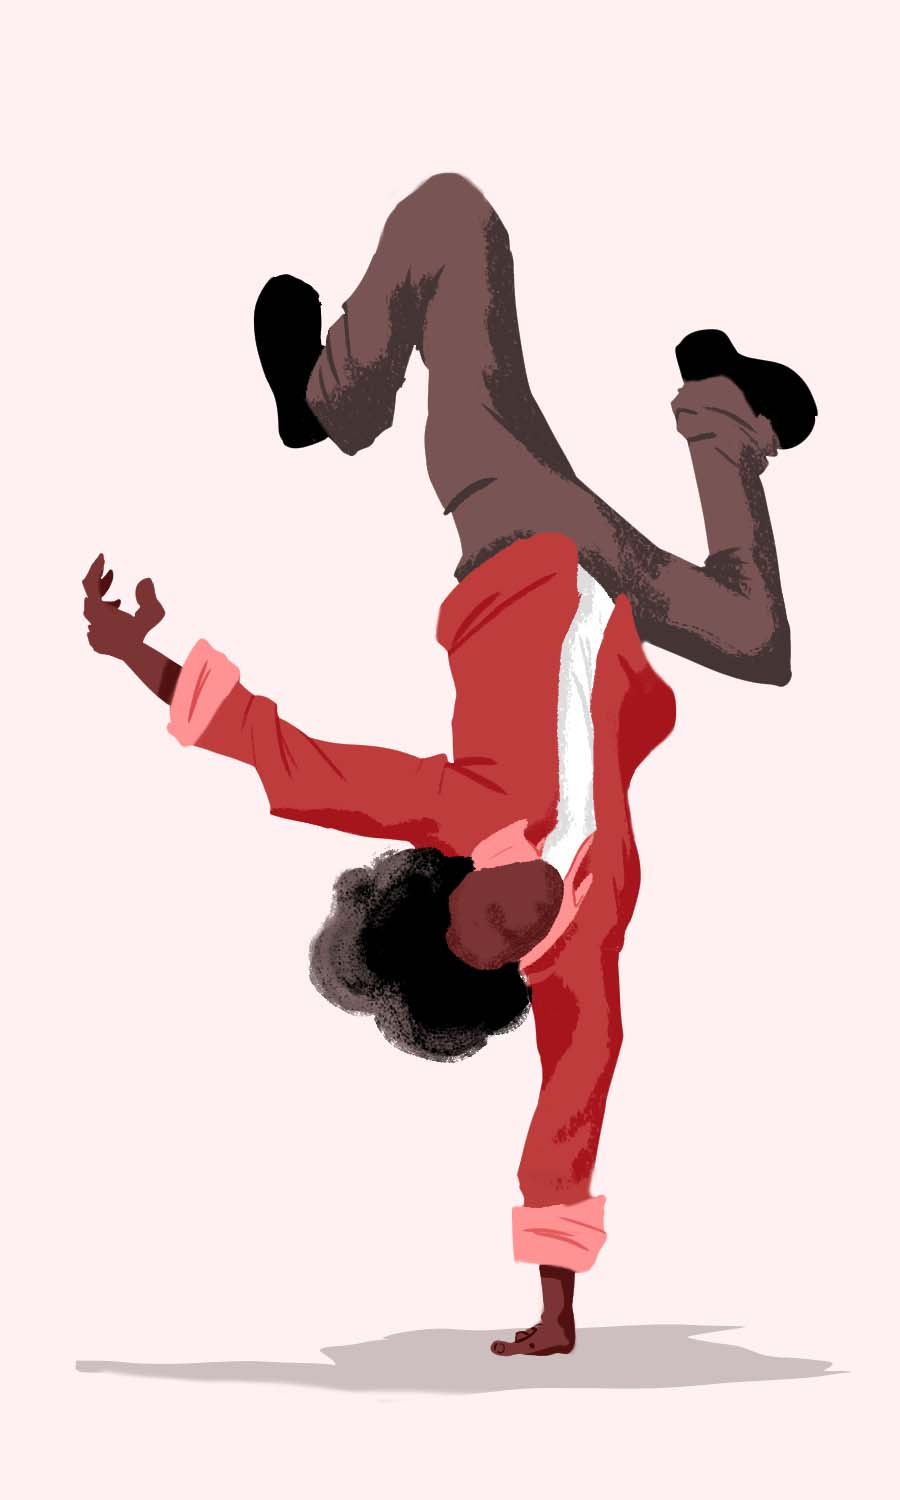 breakdancer.jpg